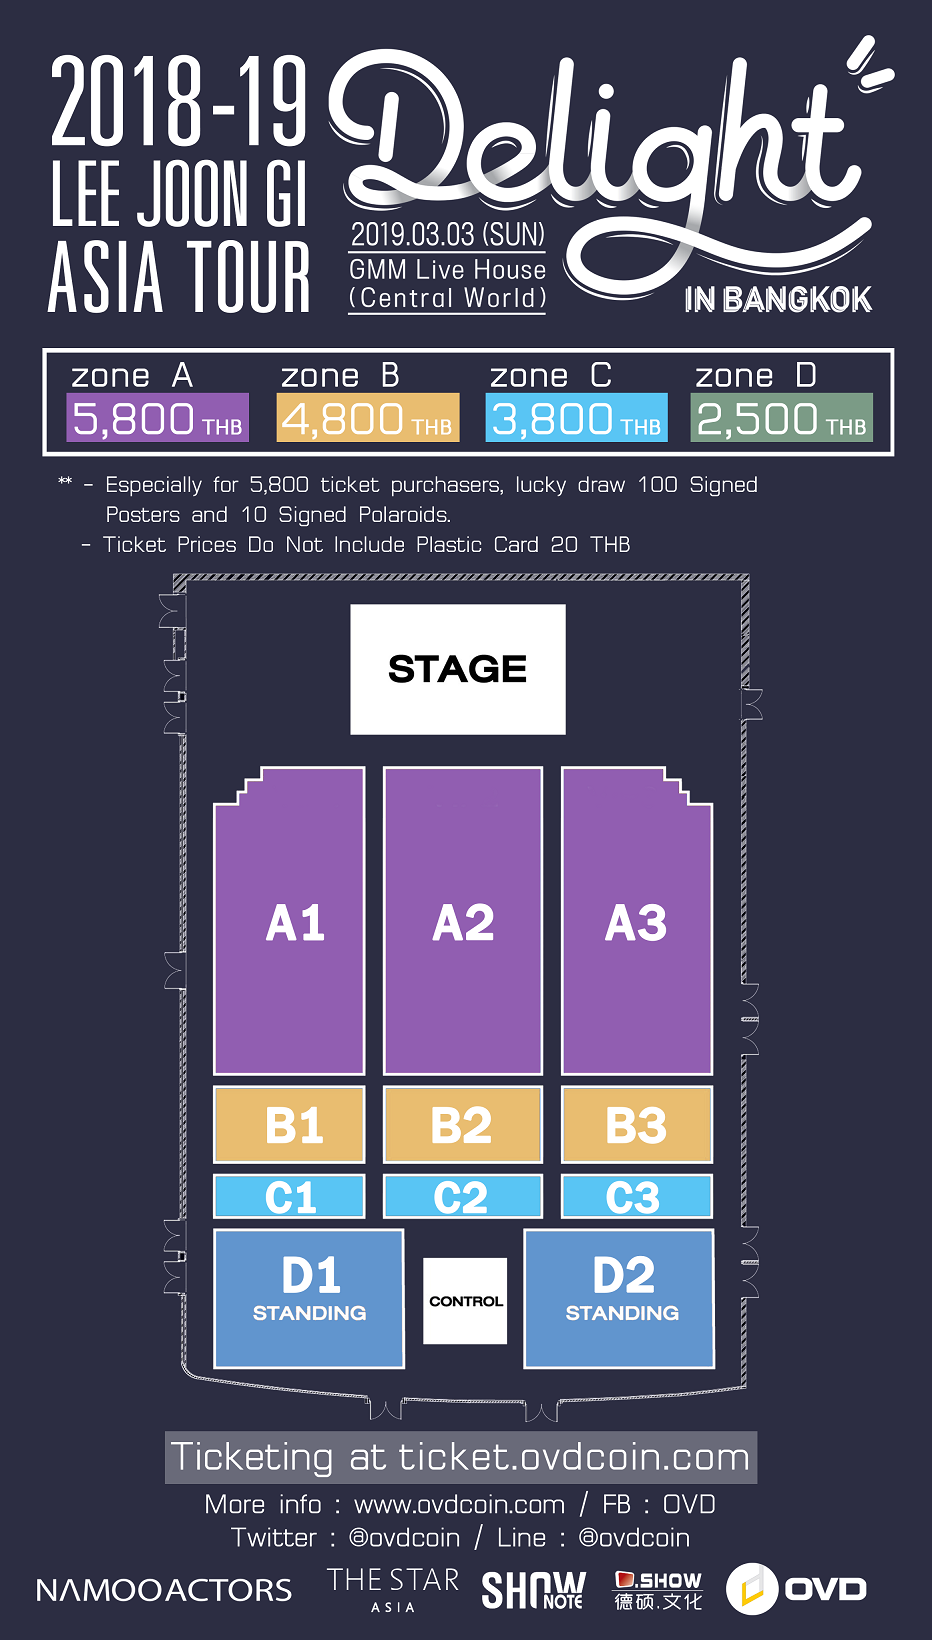 LJG_Asia Tour_BKK Seating Plan Revised 3_1_2019